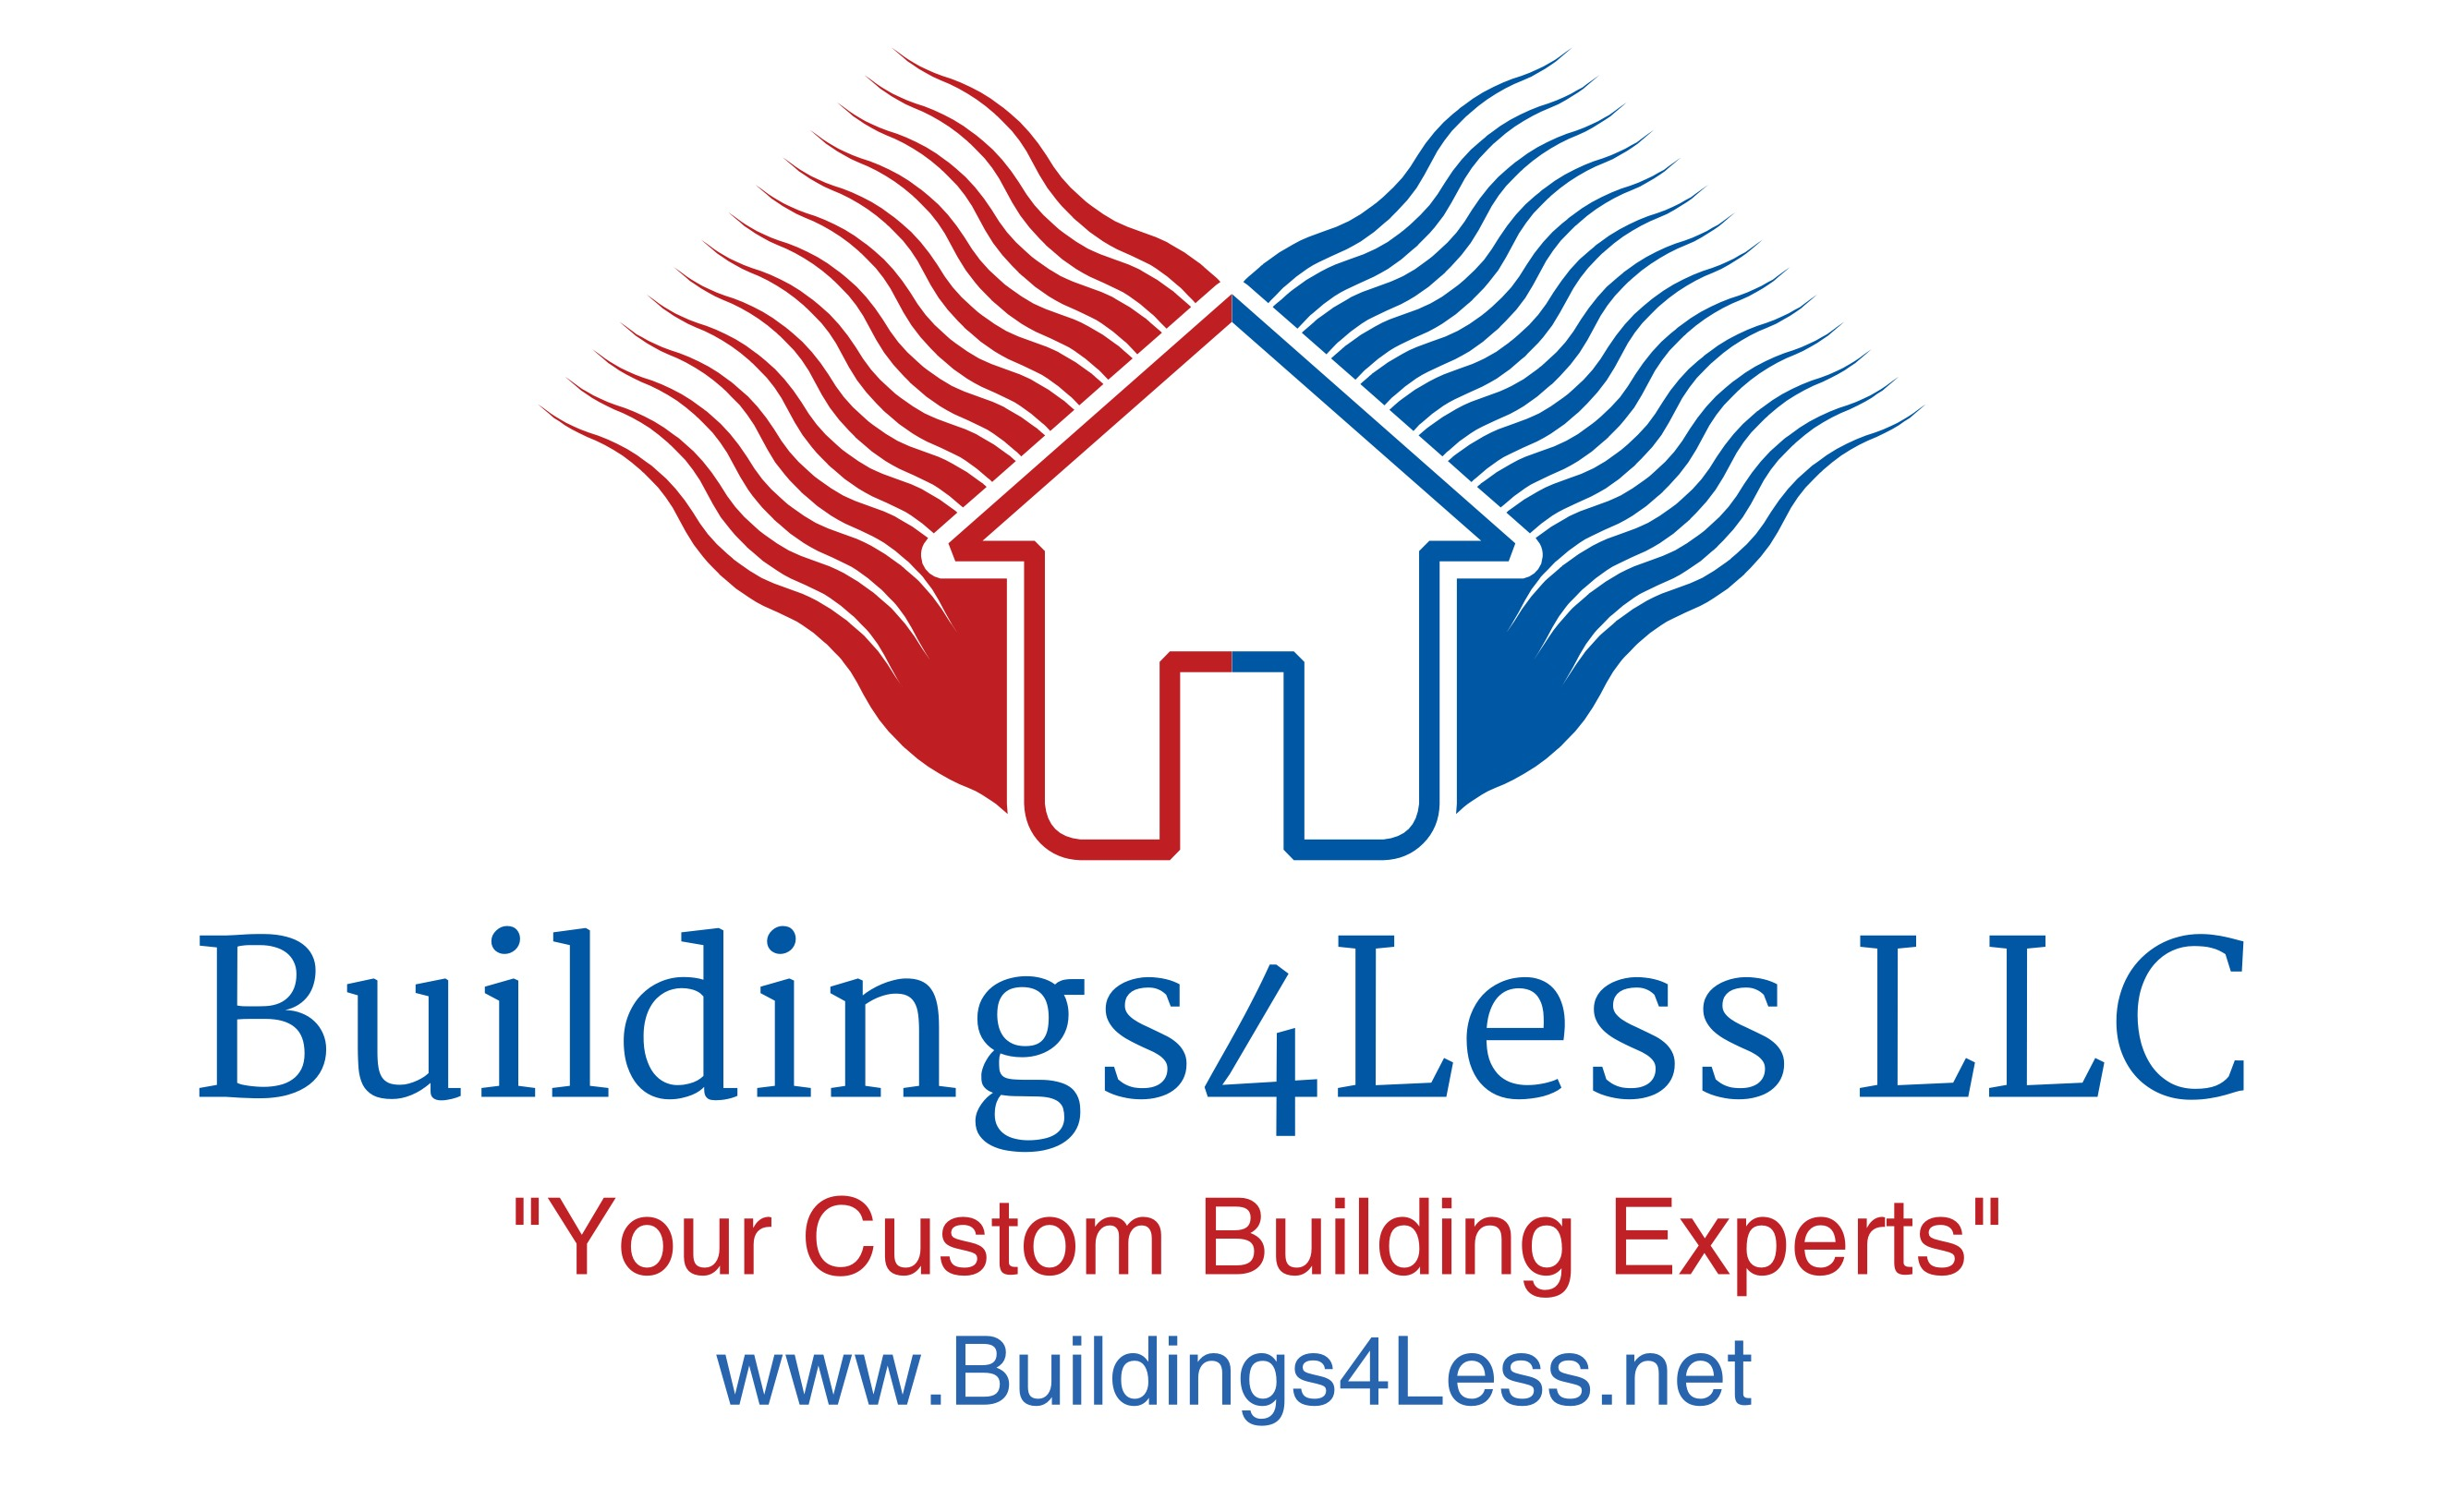 www.buildings4less.com